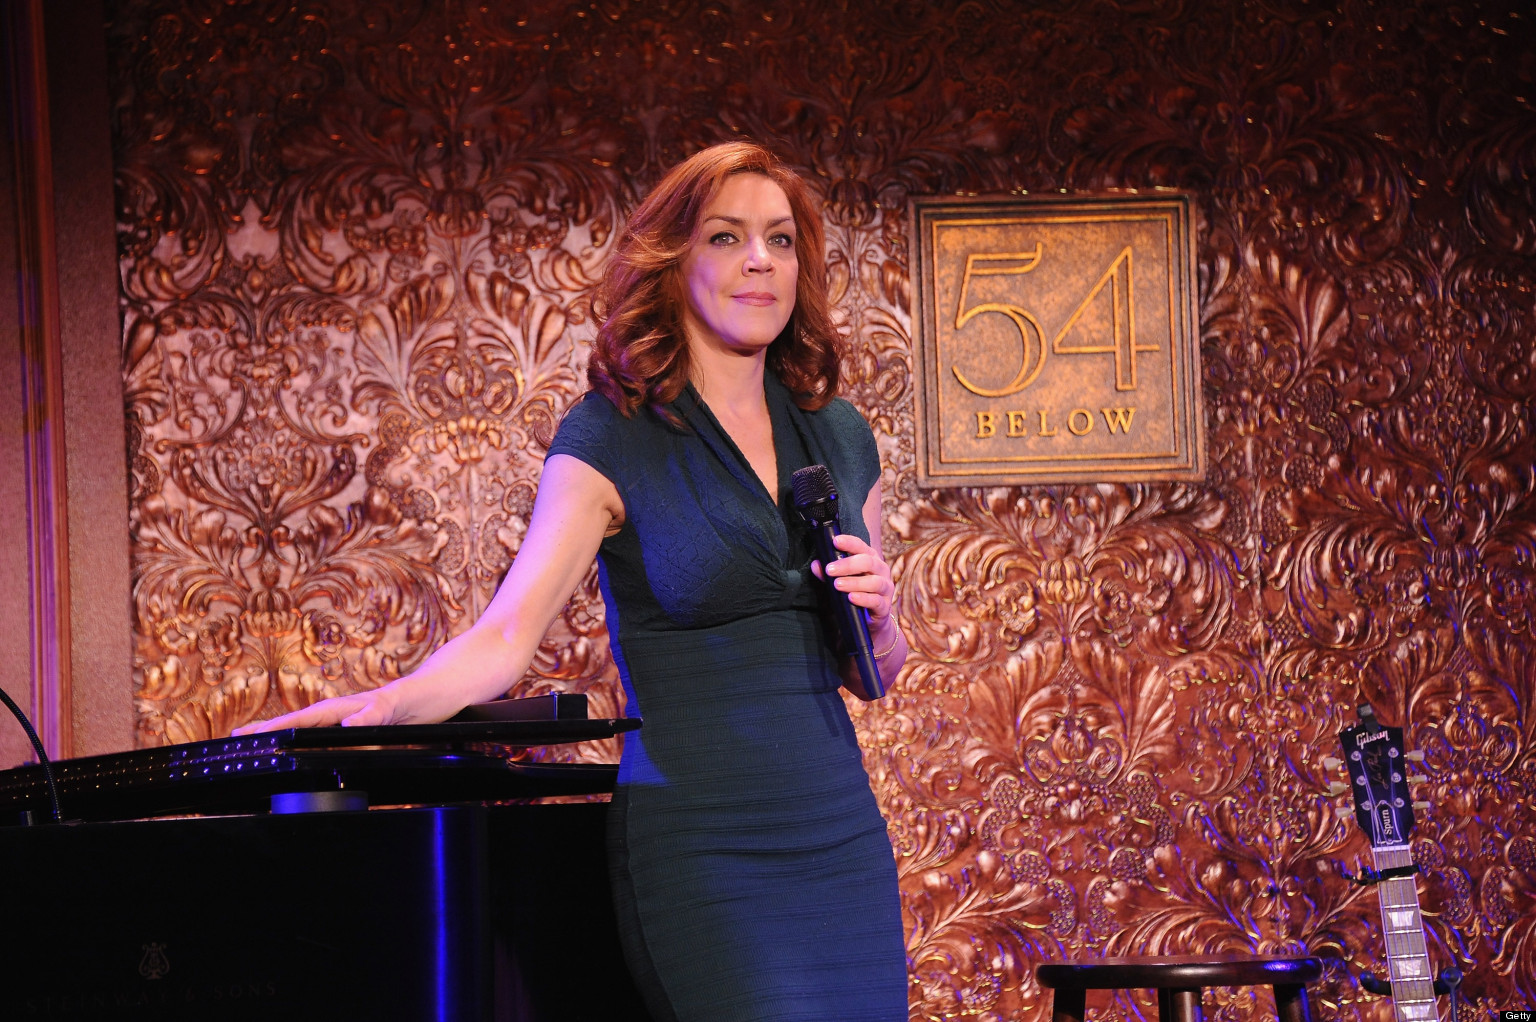 andrea mcardle singing tomorrowandrea mcardle it's the hard-knock life, andrea mcardle hard knock life, andrea mcardle, andrea mcardle tomorrow, andrea mcardle singing tomorrow, andrea mcardle tomorrow lyrics, andrea mcardle annie, andrea mcardle youtube, andrea mcardle net worth, andrea mcardle rainbow, andrea mcardle maybe, andrea mcardle annie youtube, andrea mcardle daughter, andrea mcardle 2015, andrea mcardle hello dolly, andrea mcardle imdb, andrea mcardle singing maybe, andrea mcardle beauty and the beast, andrea mcardle miss hannigan, andrea mcardle concert